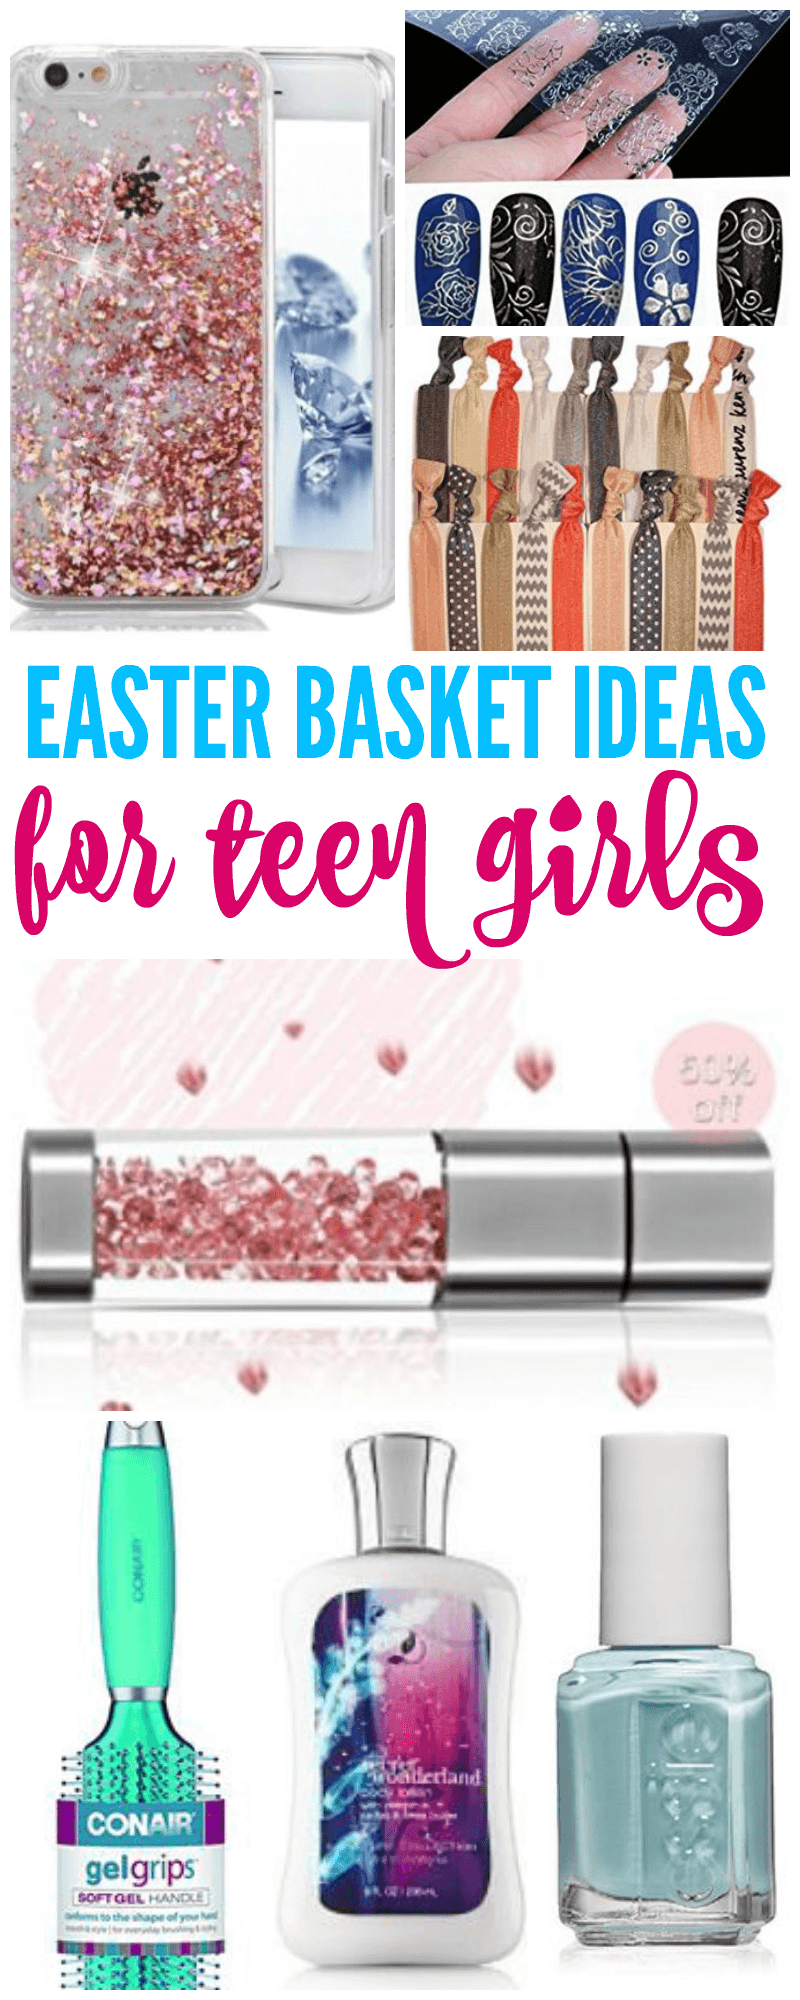 Teen girl easter baskets the best gift ideas for your daughters teen girl easter baskets the best gift ideas for your daughters and sisters this year negle Choice Image